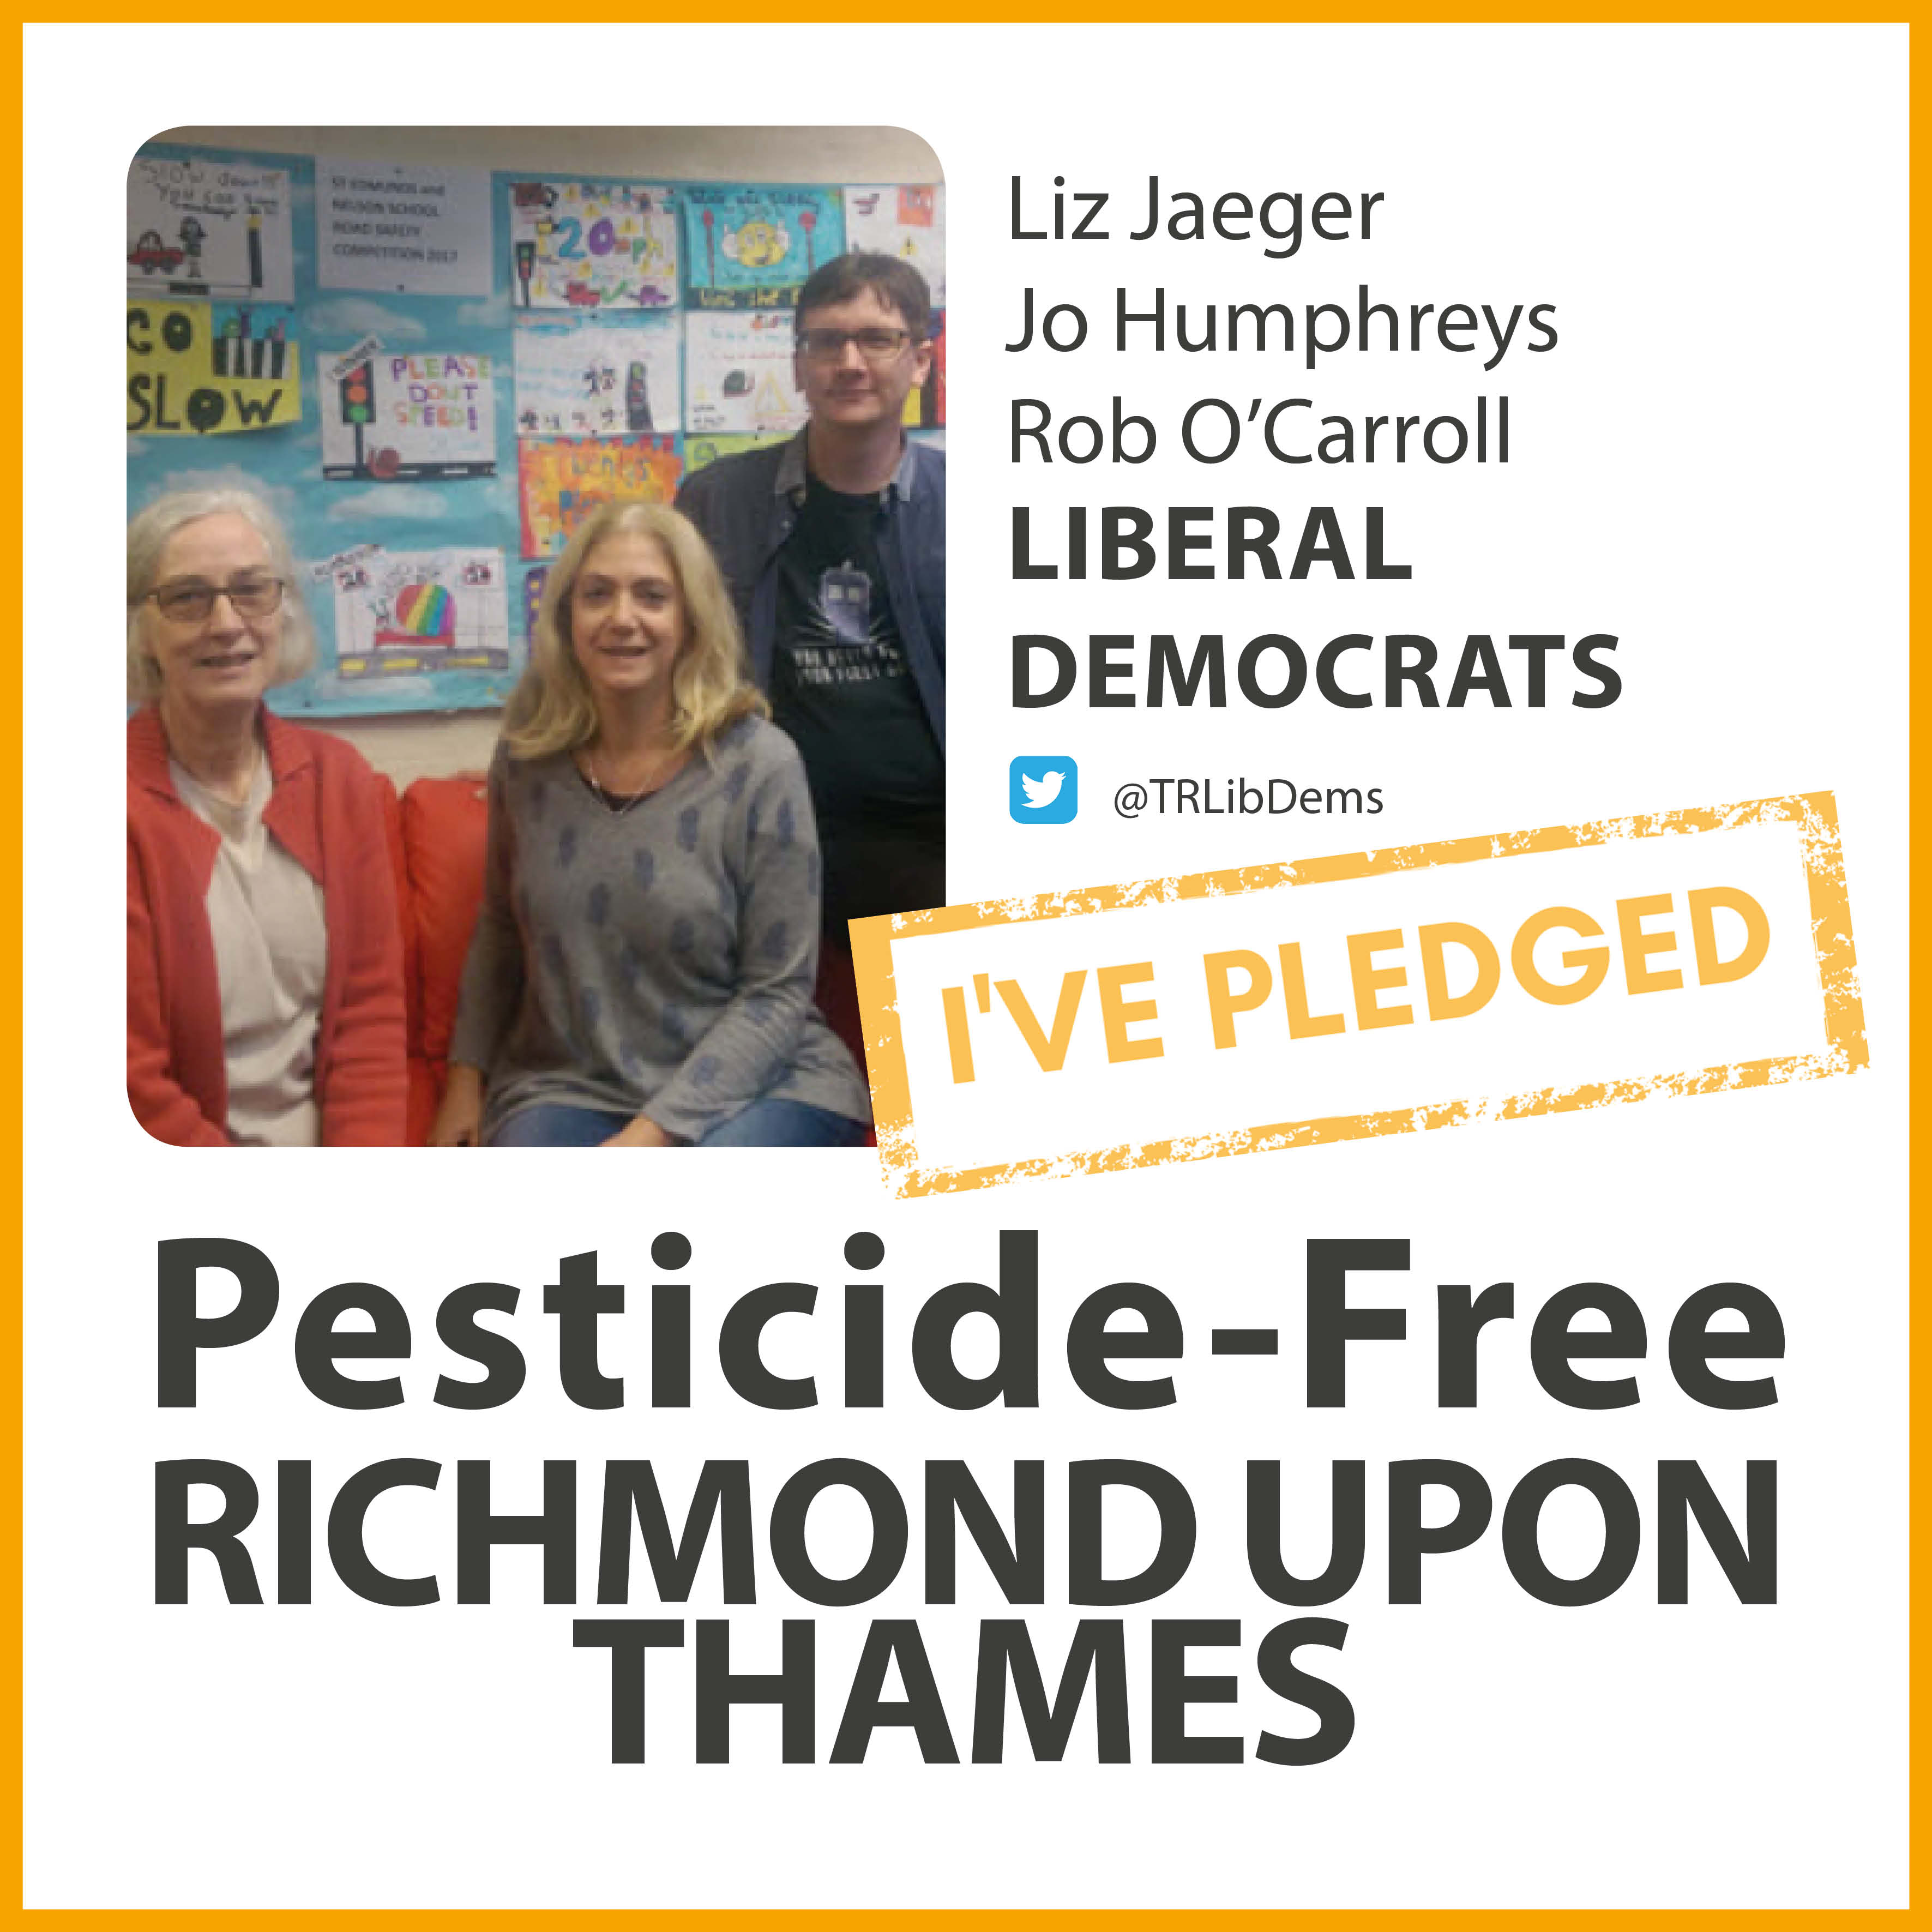 Whitton Lib Dems have taken the pesticide-free pledge